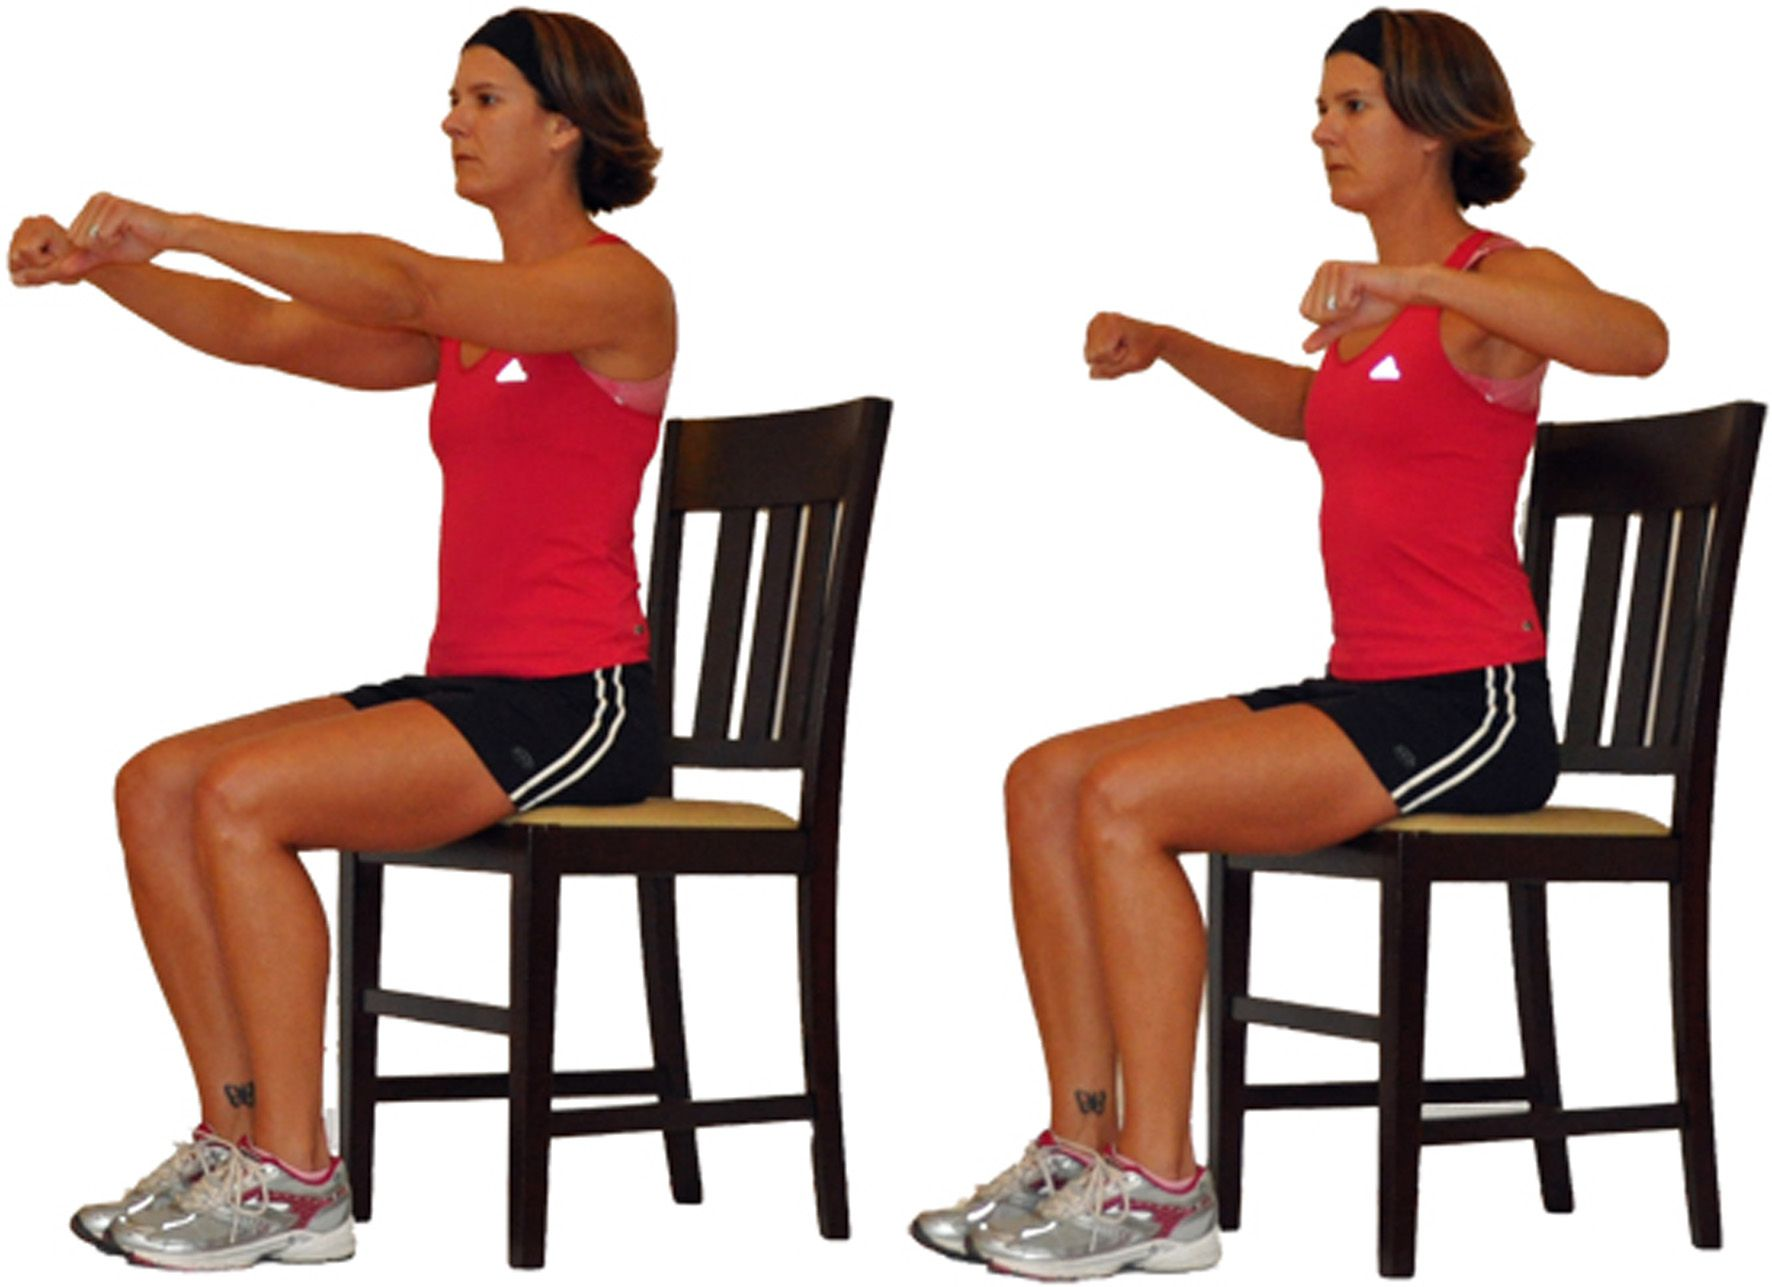 Seated upper body workout from your chair publicscrutiny Gallery